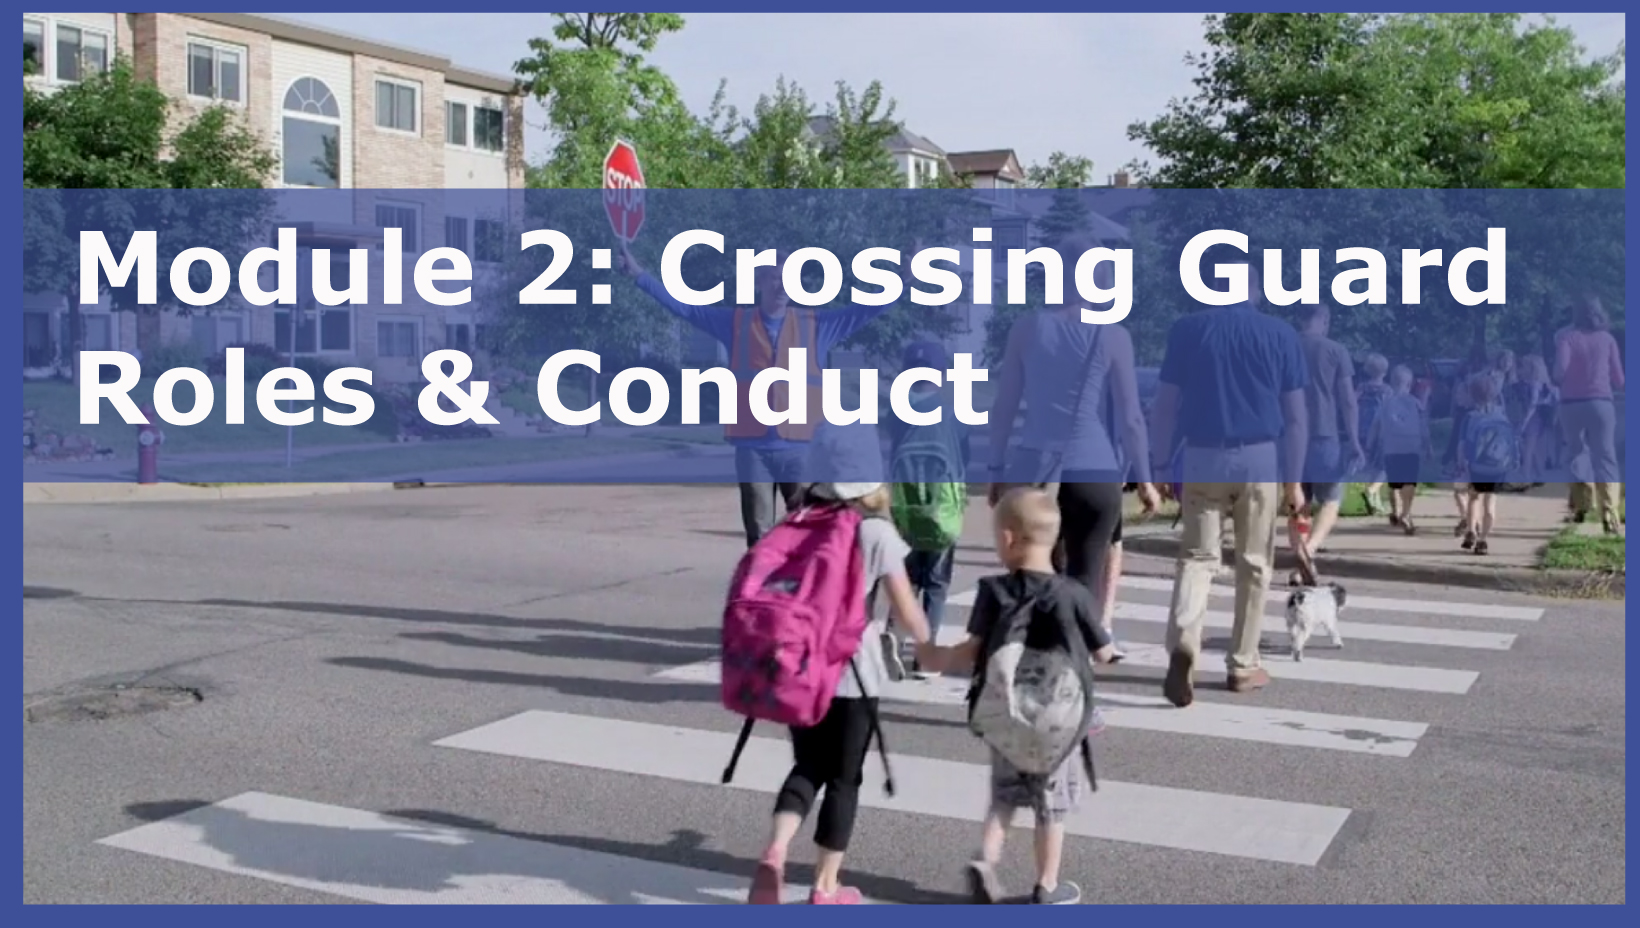 Module 2: Crossing Guard Roles and Conduct